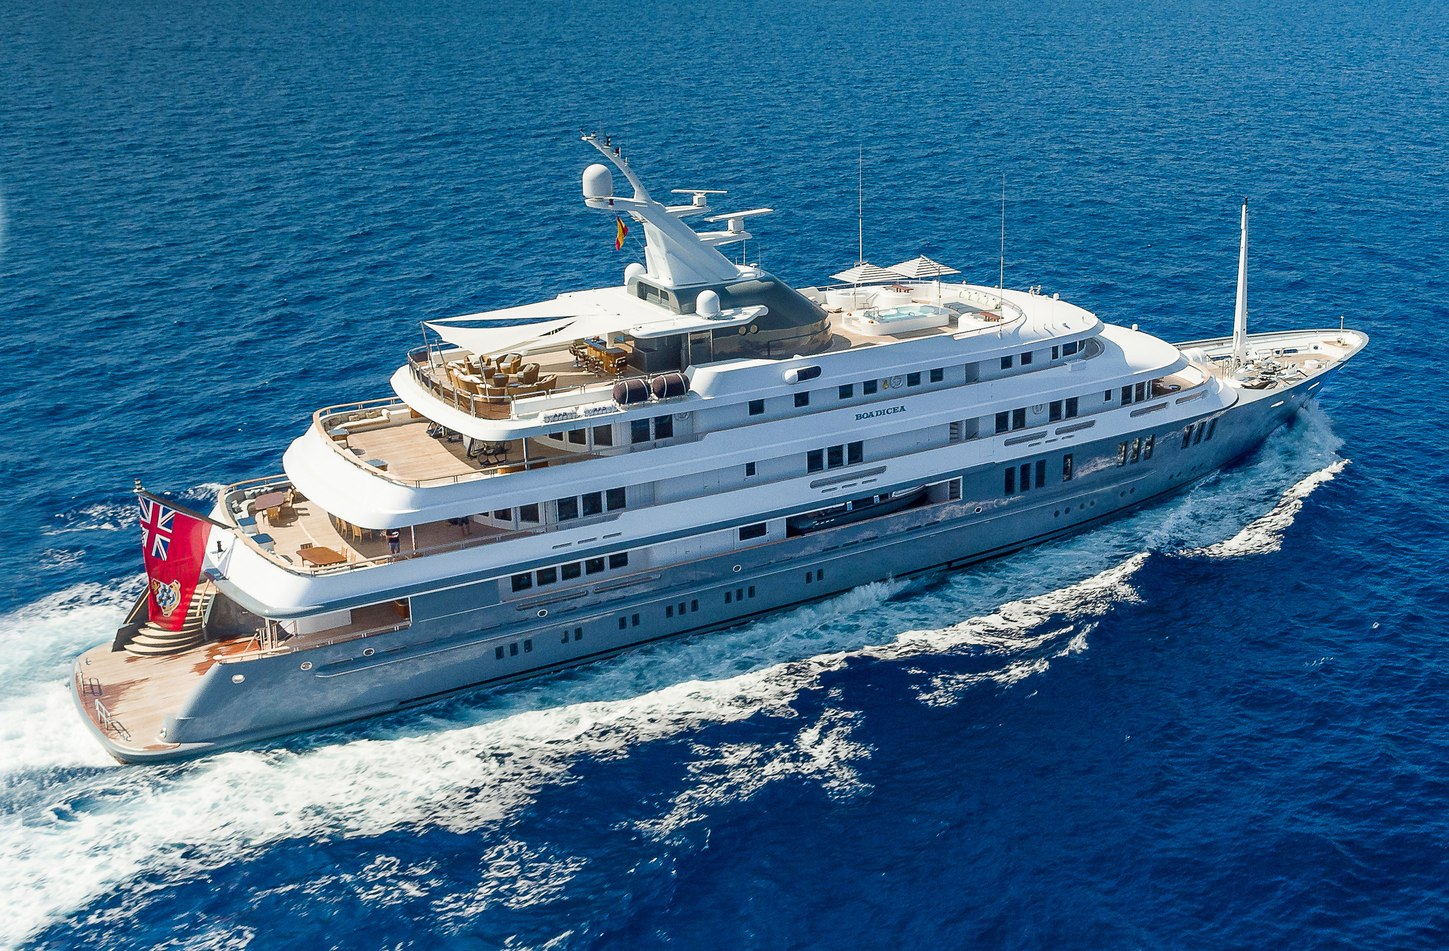 charter yacht BOADICEA cruising on a Mediterranean yachting vacation